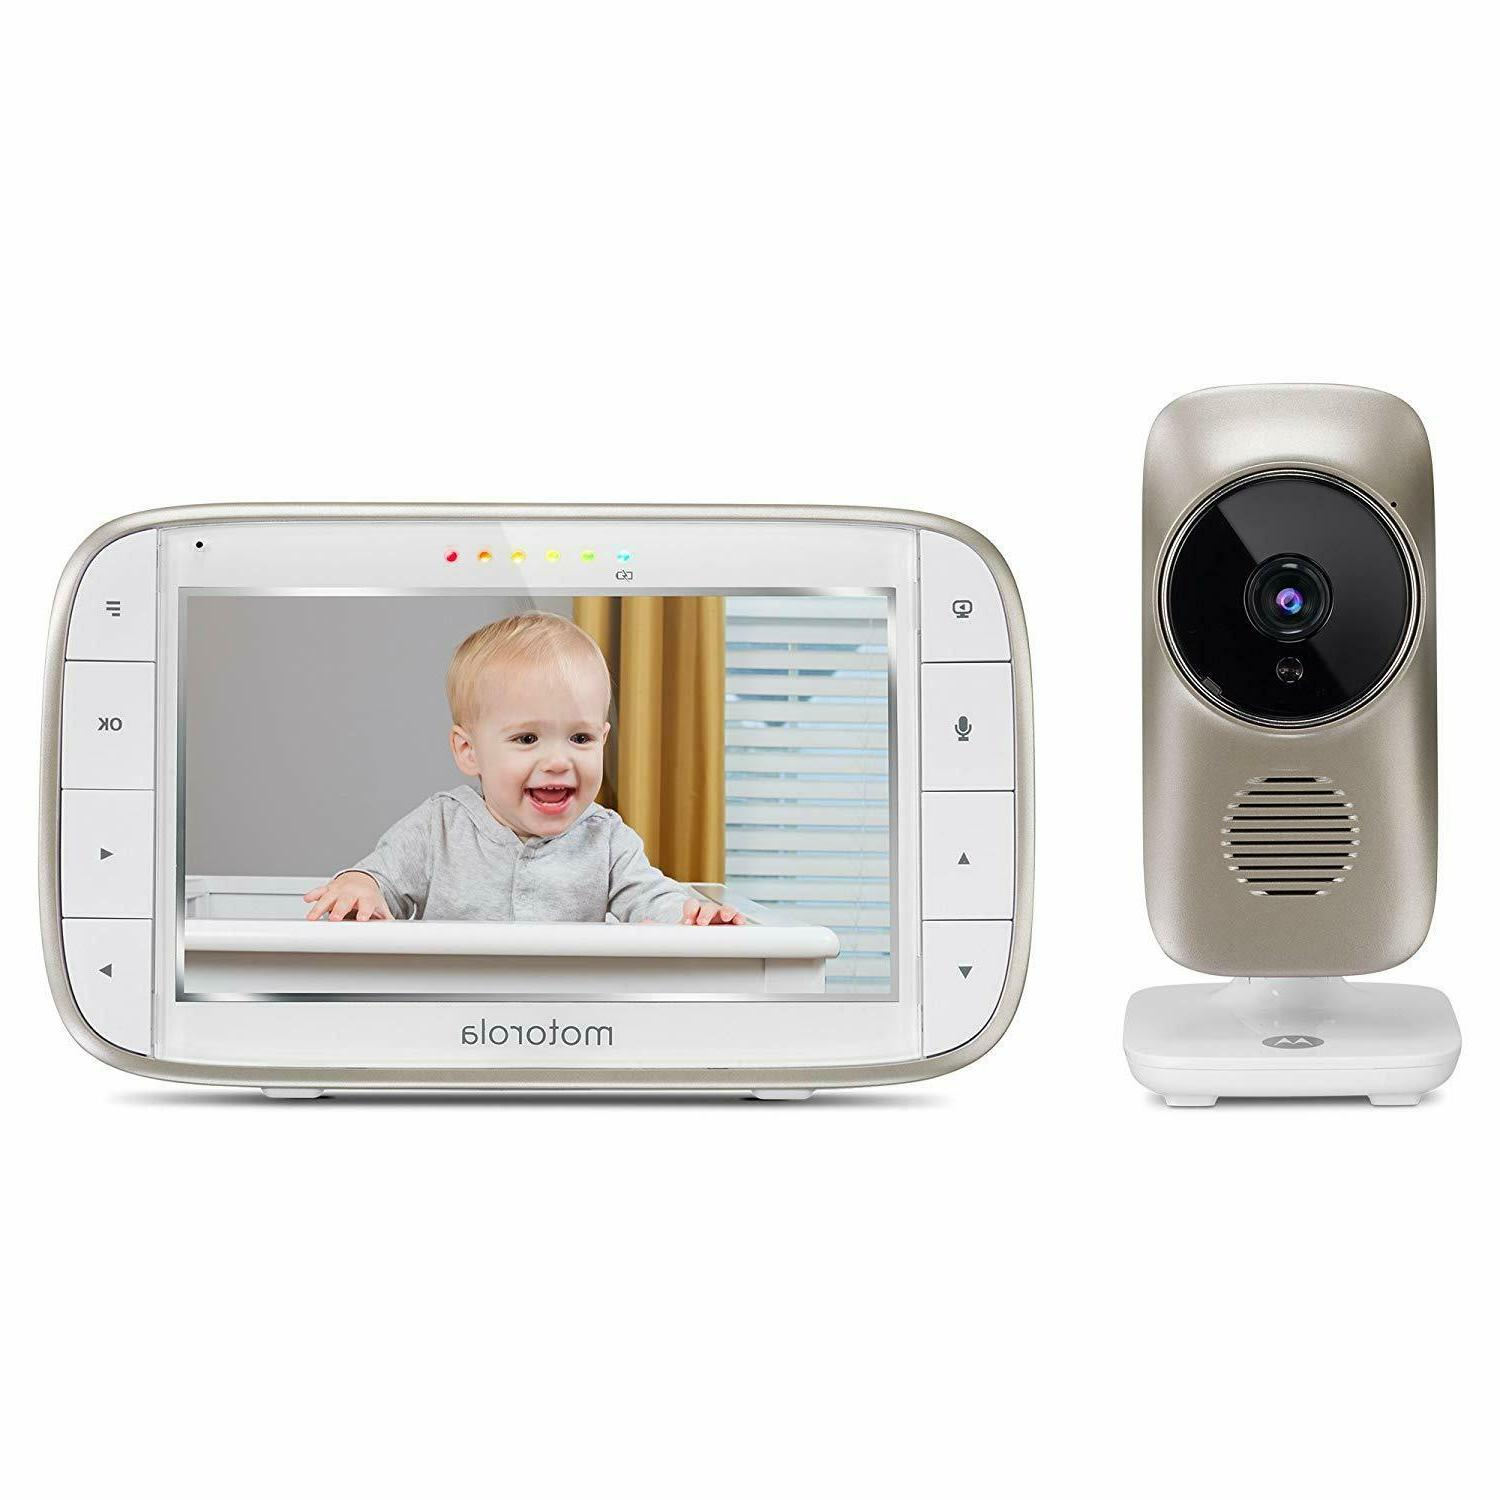 mbp845connect 5 inch video baby monitor w